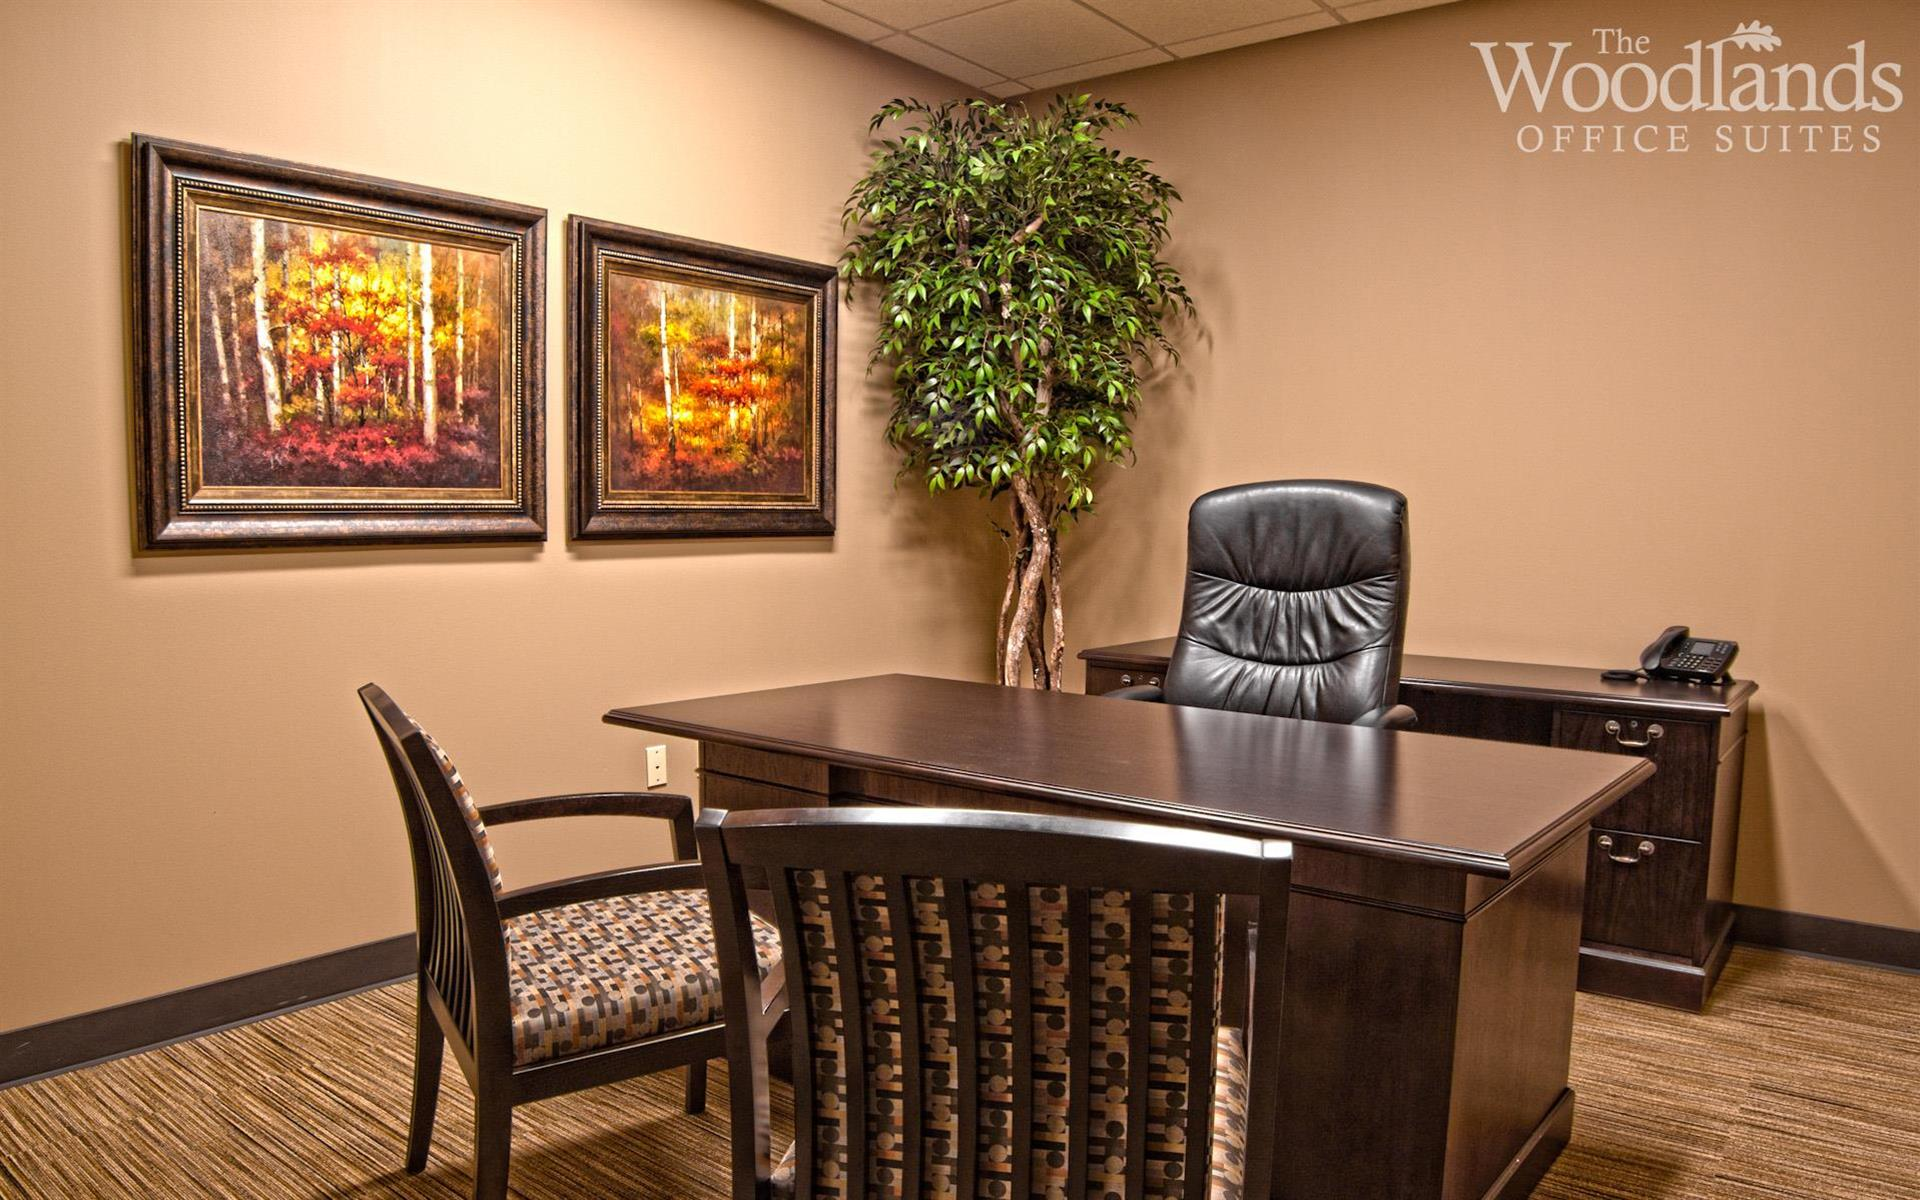 The Woodlands Office Suites - Suite #238 - Medium Interior Office